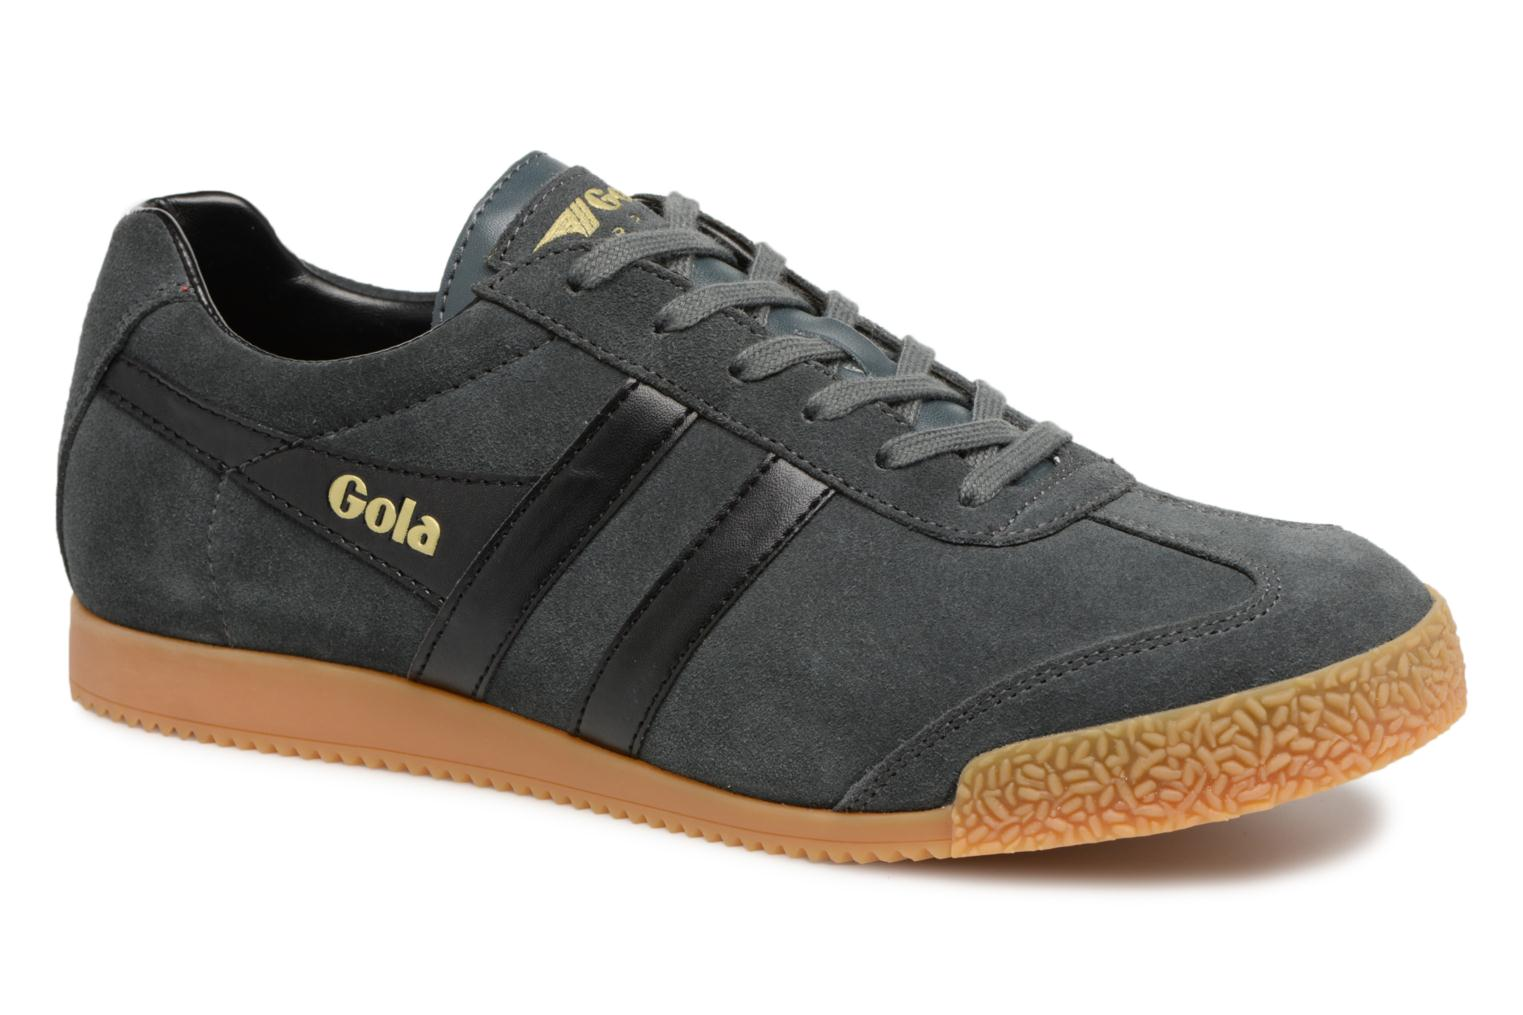 Gola Harrier (Bleu) - Baskets en Más cómodo Super rabais